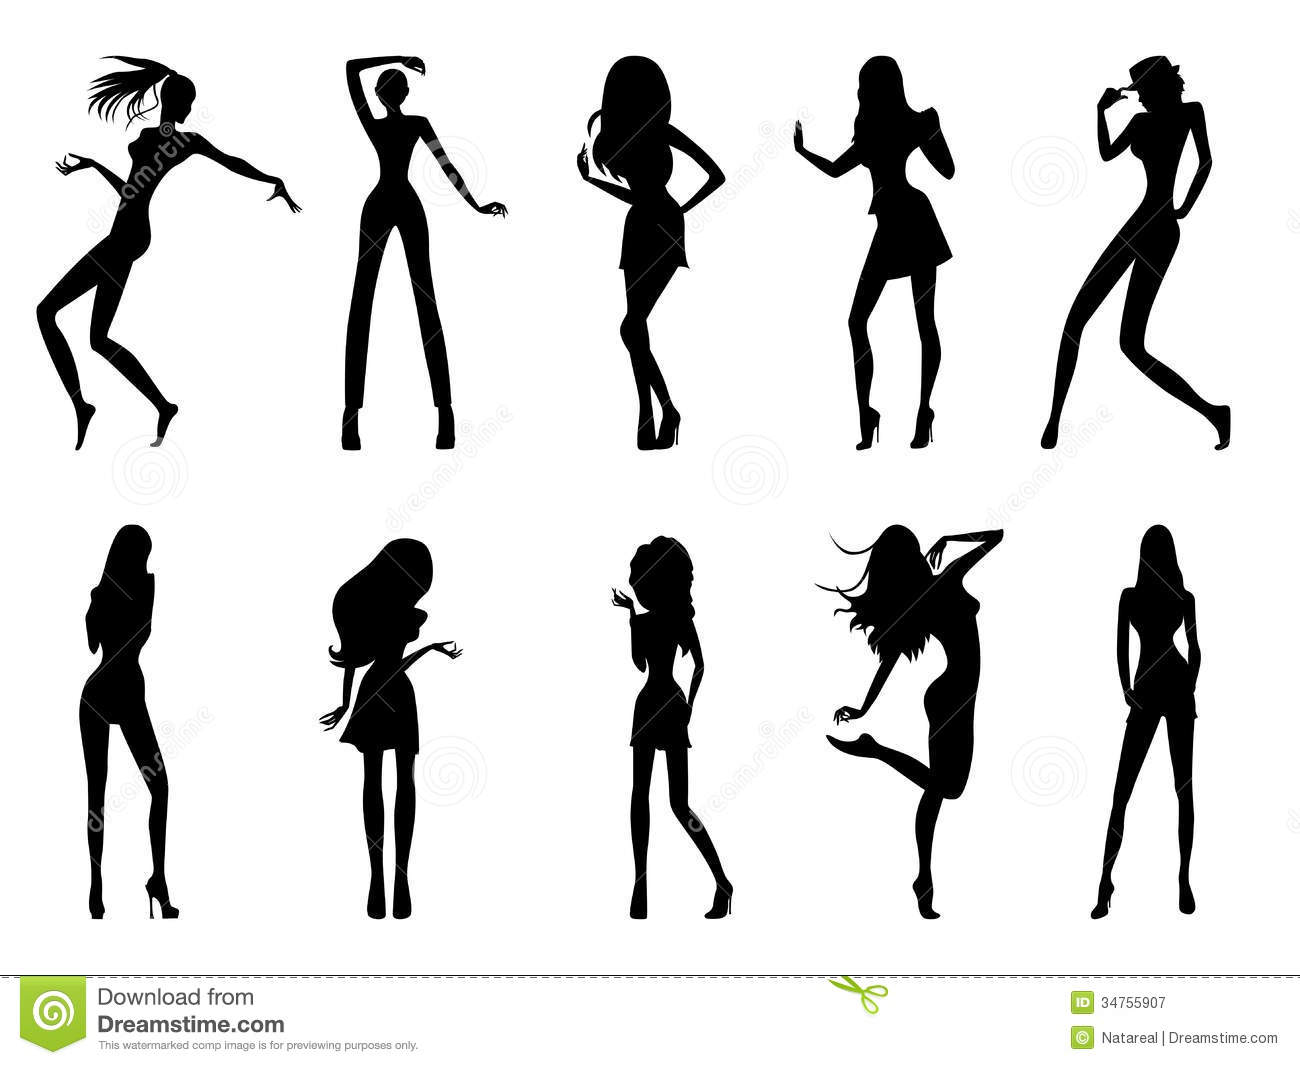 Fashionable Model Silhouettes Royalty Free Stock